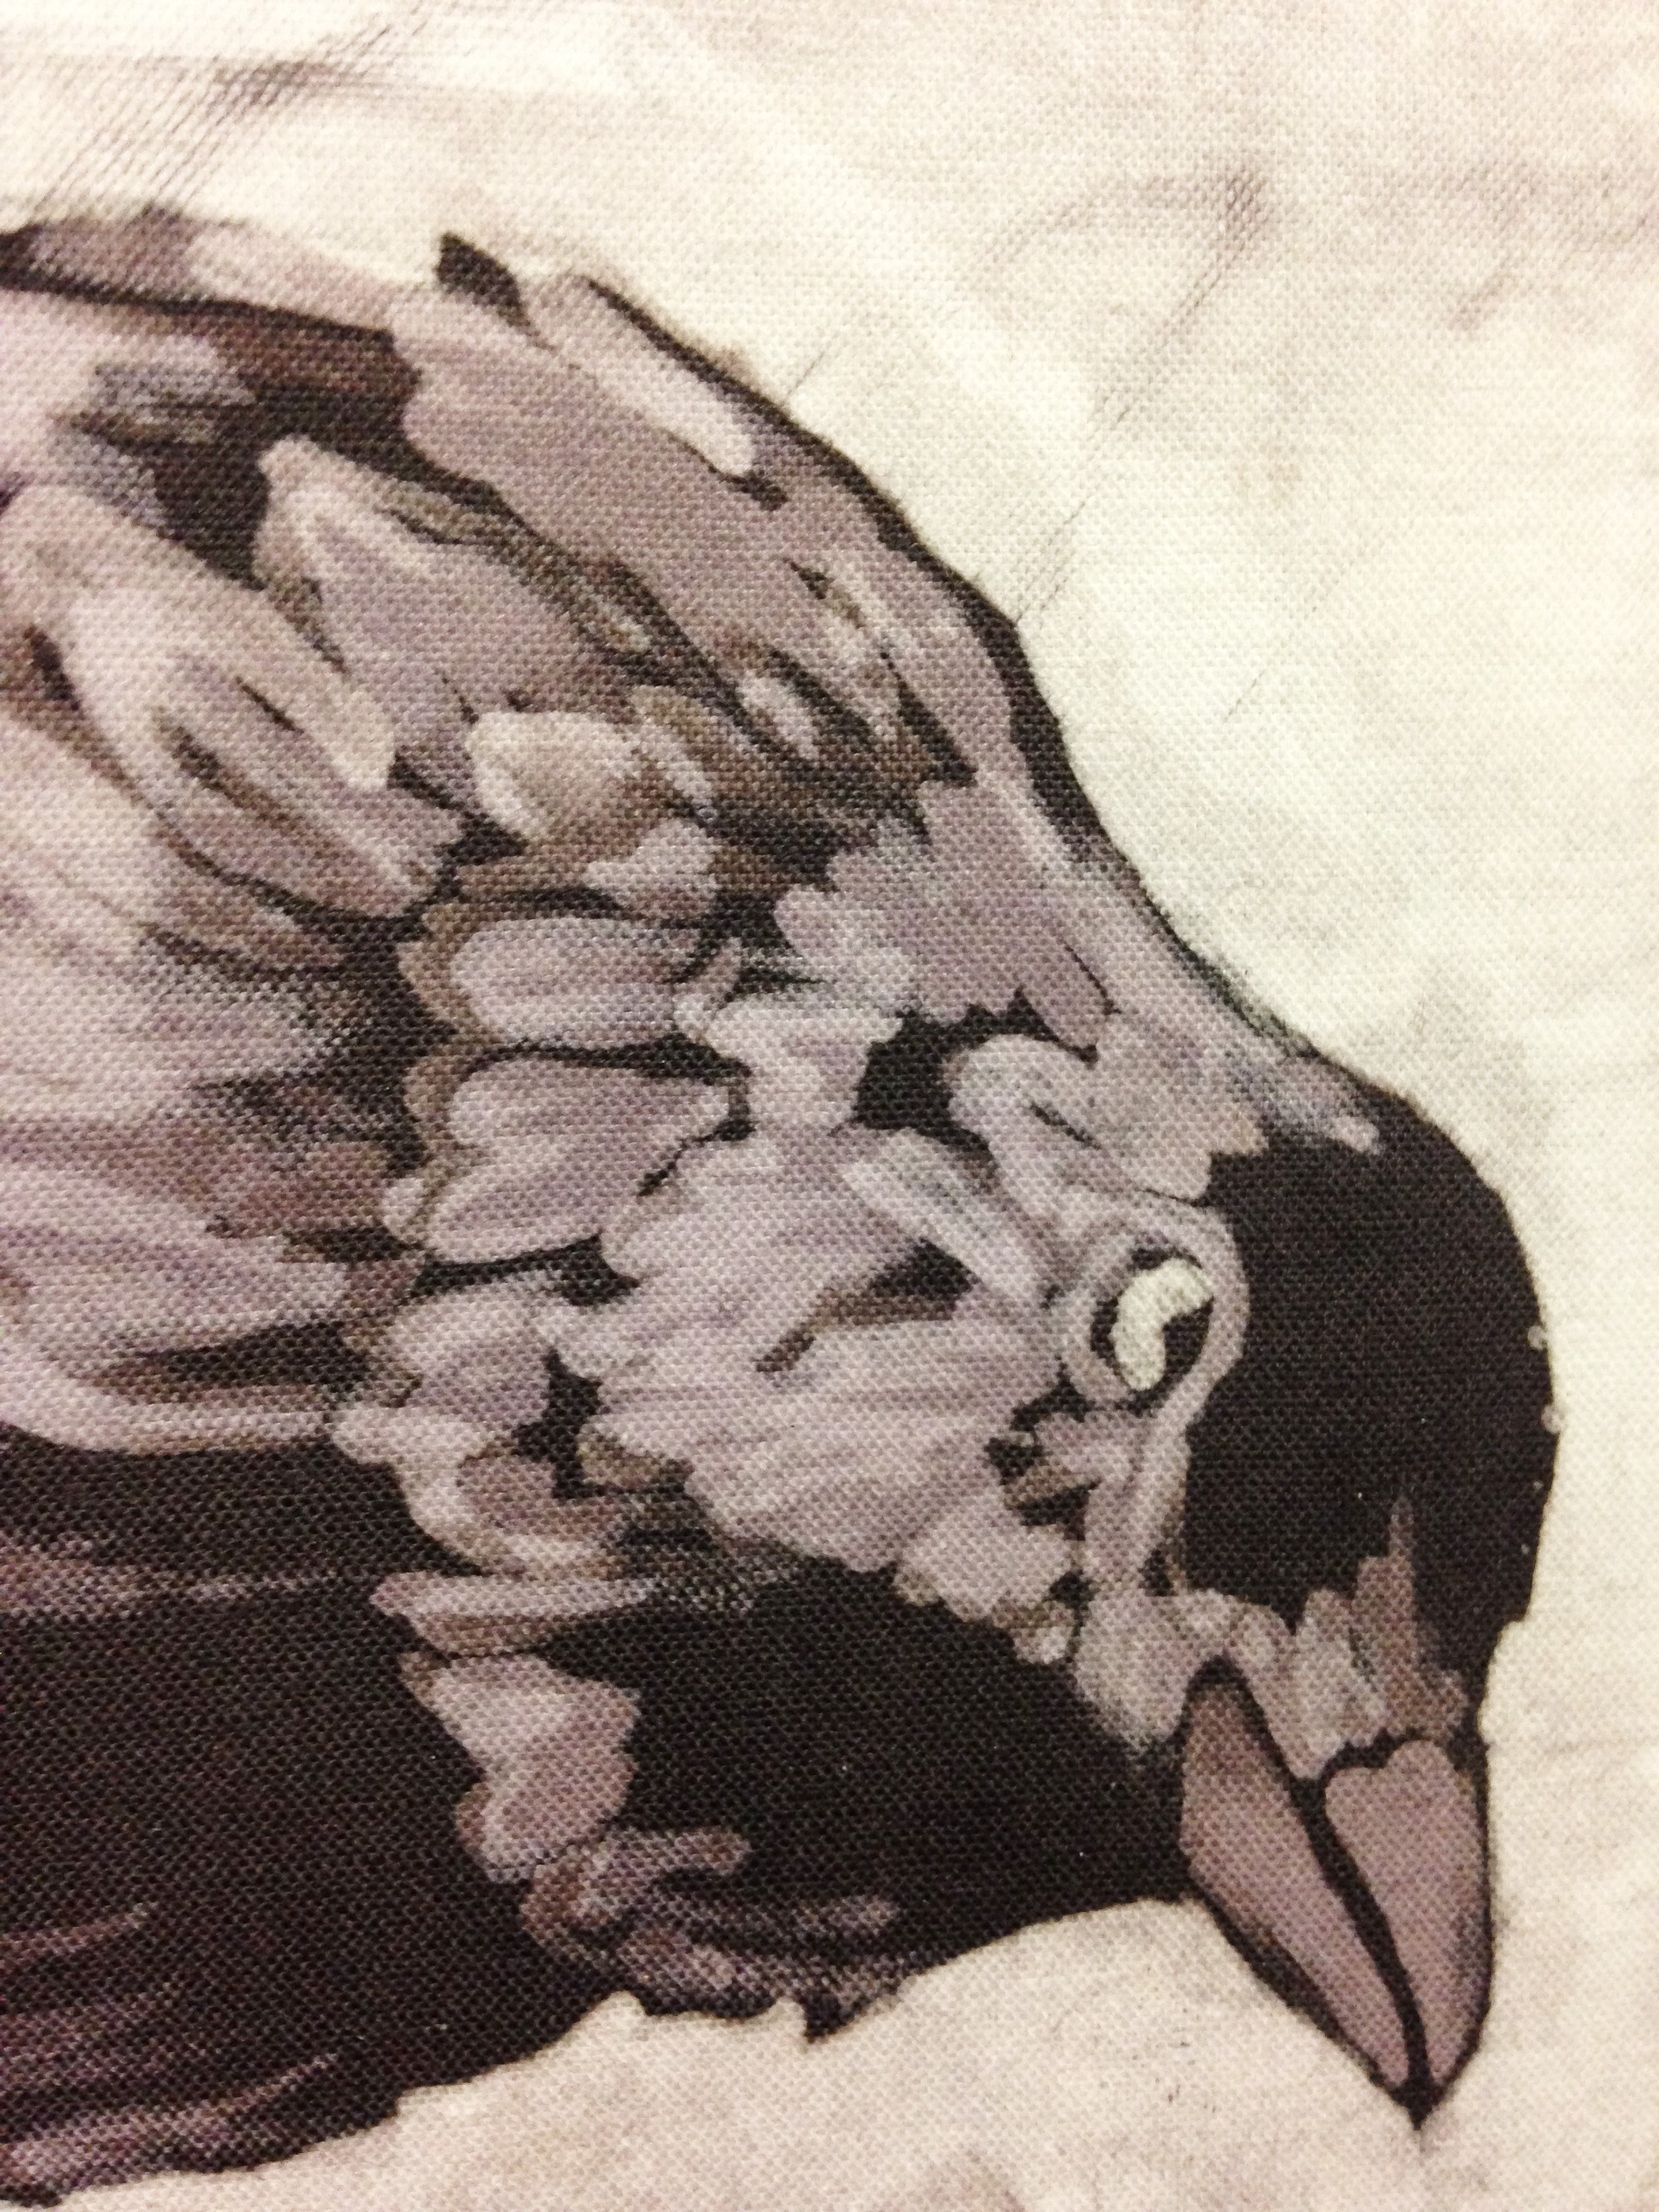 black bird detail.jpg